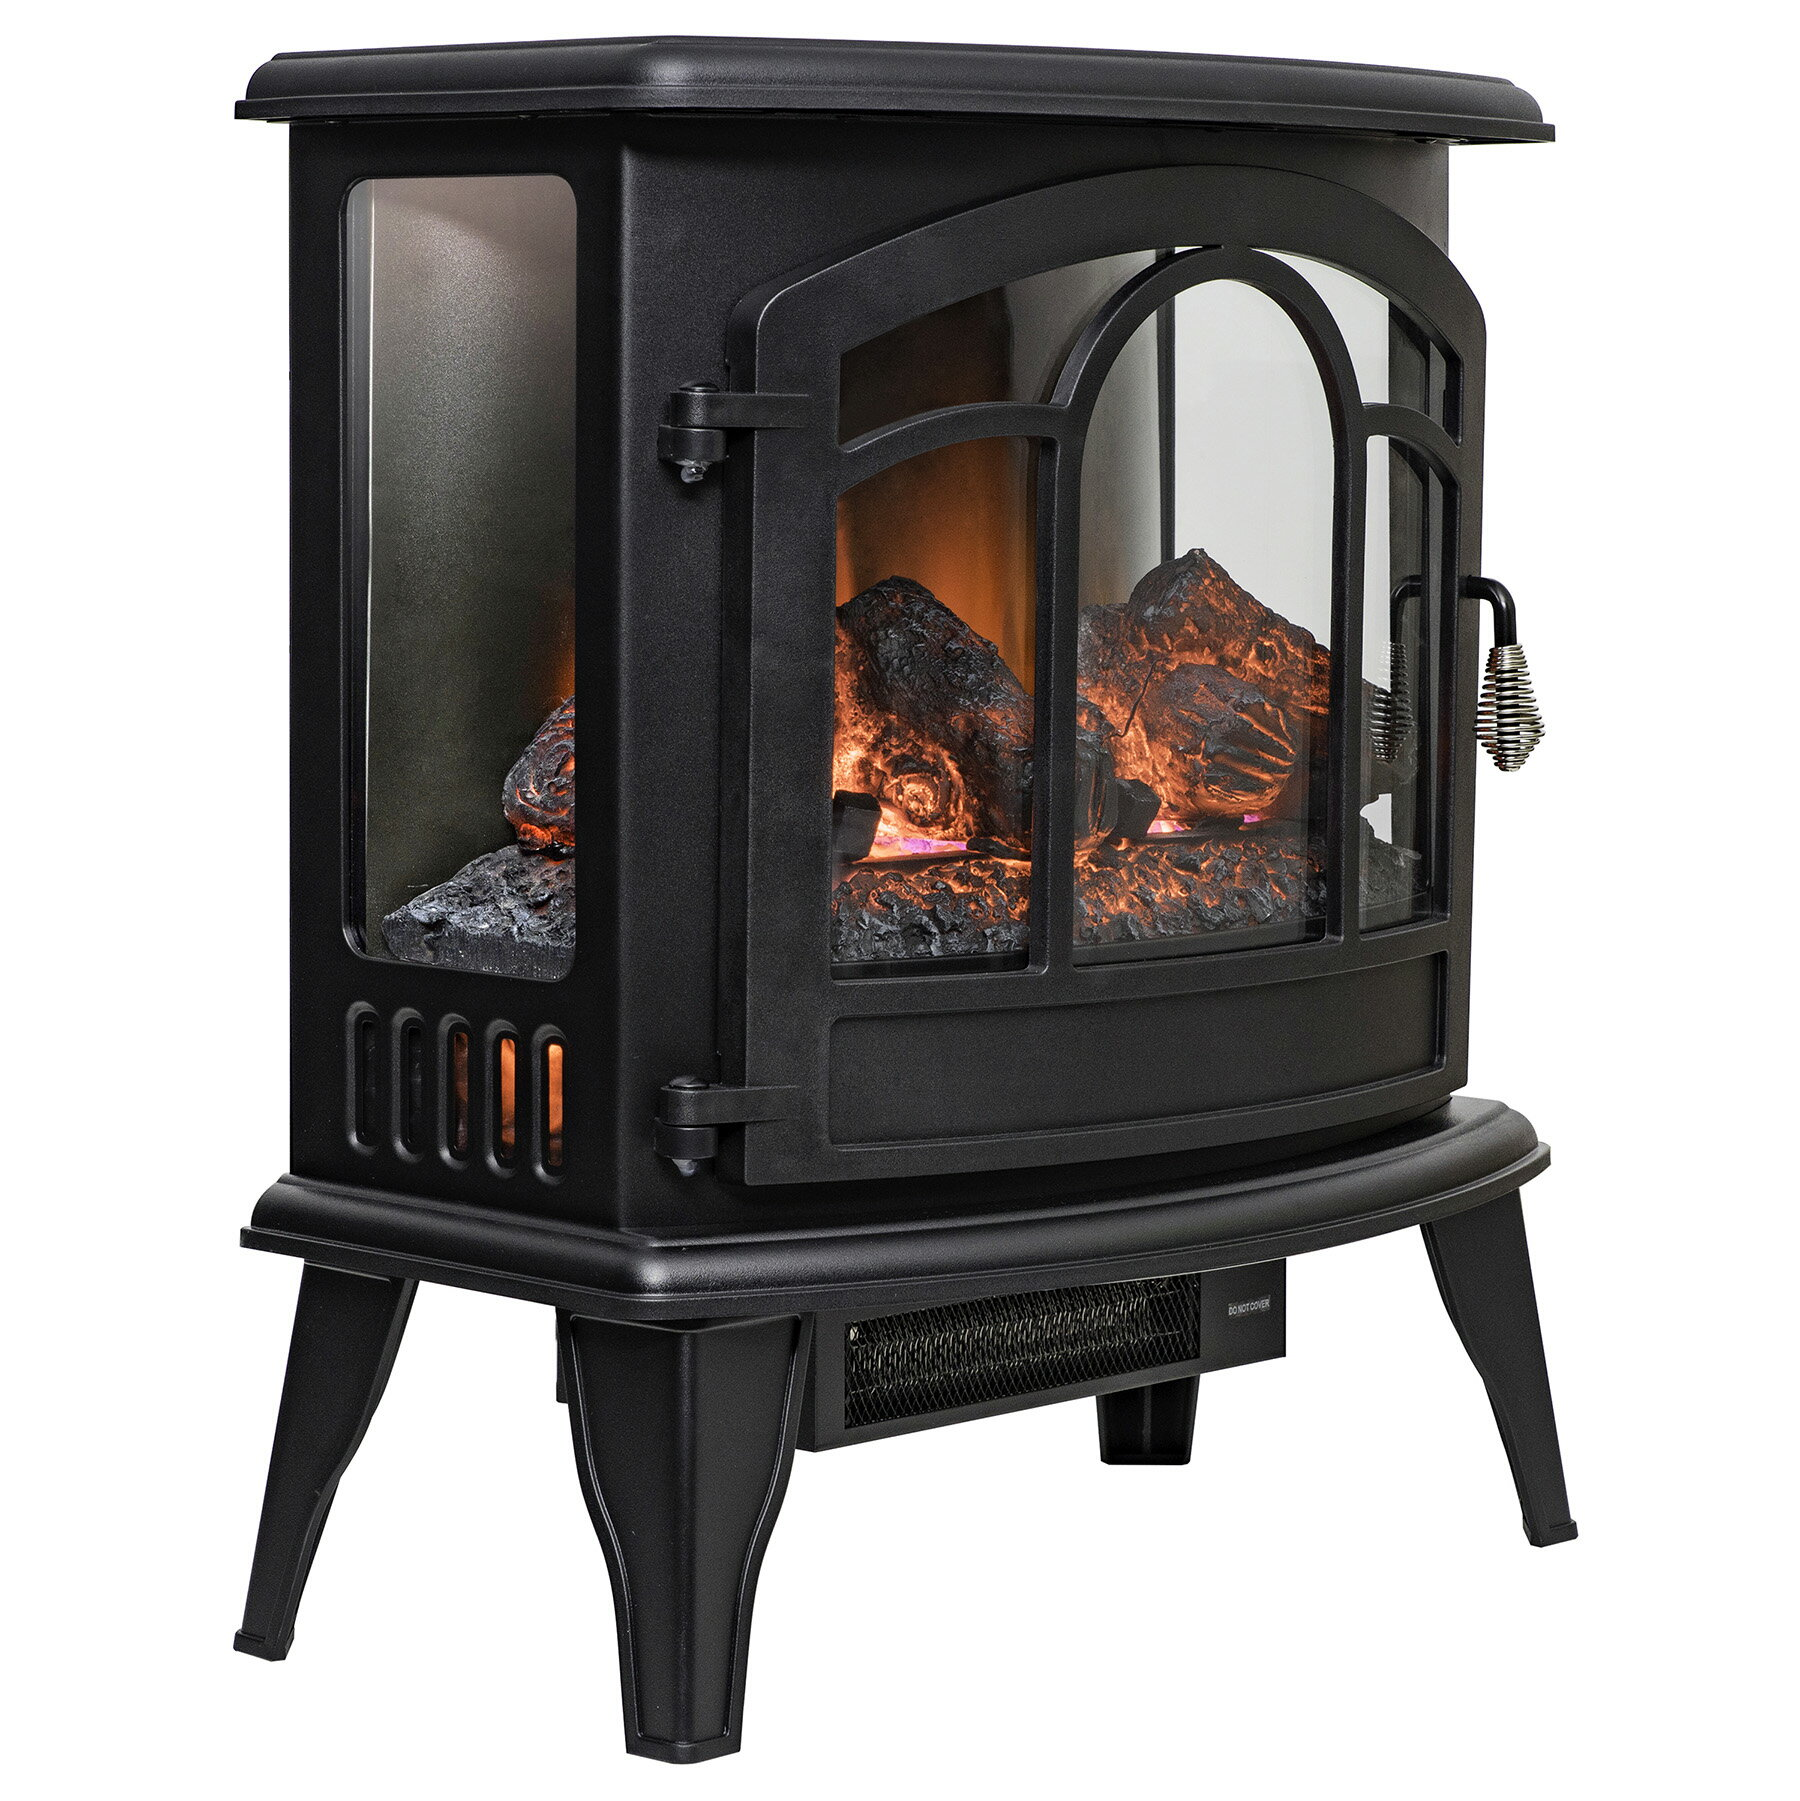 "AKDY 20"" Black Finish Freestanding Portable Electric Fireplace Firebox w/ Logs & Remote 3"